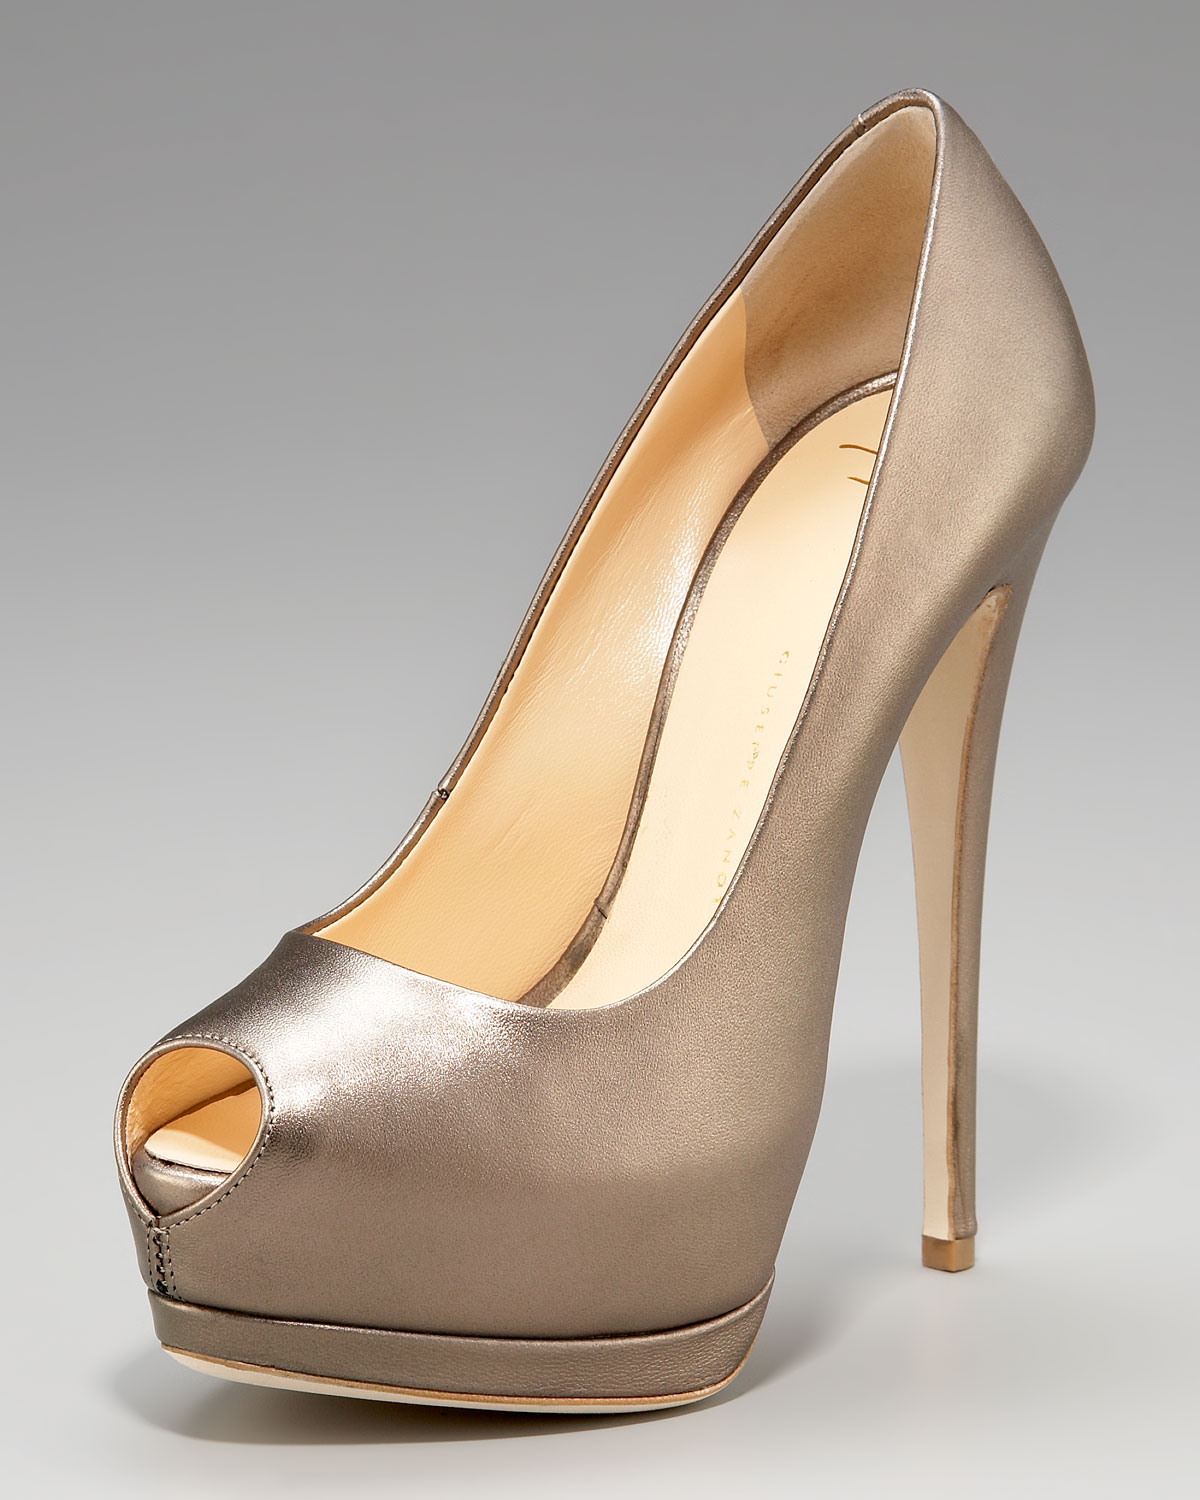 Giuseppe Zanotti Metallic Peep-Toe Pumps discount latest cheap online store Manchester cheap sale new arrival for cheap cheap online outlet fast delivery HEZIpmmA